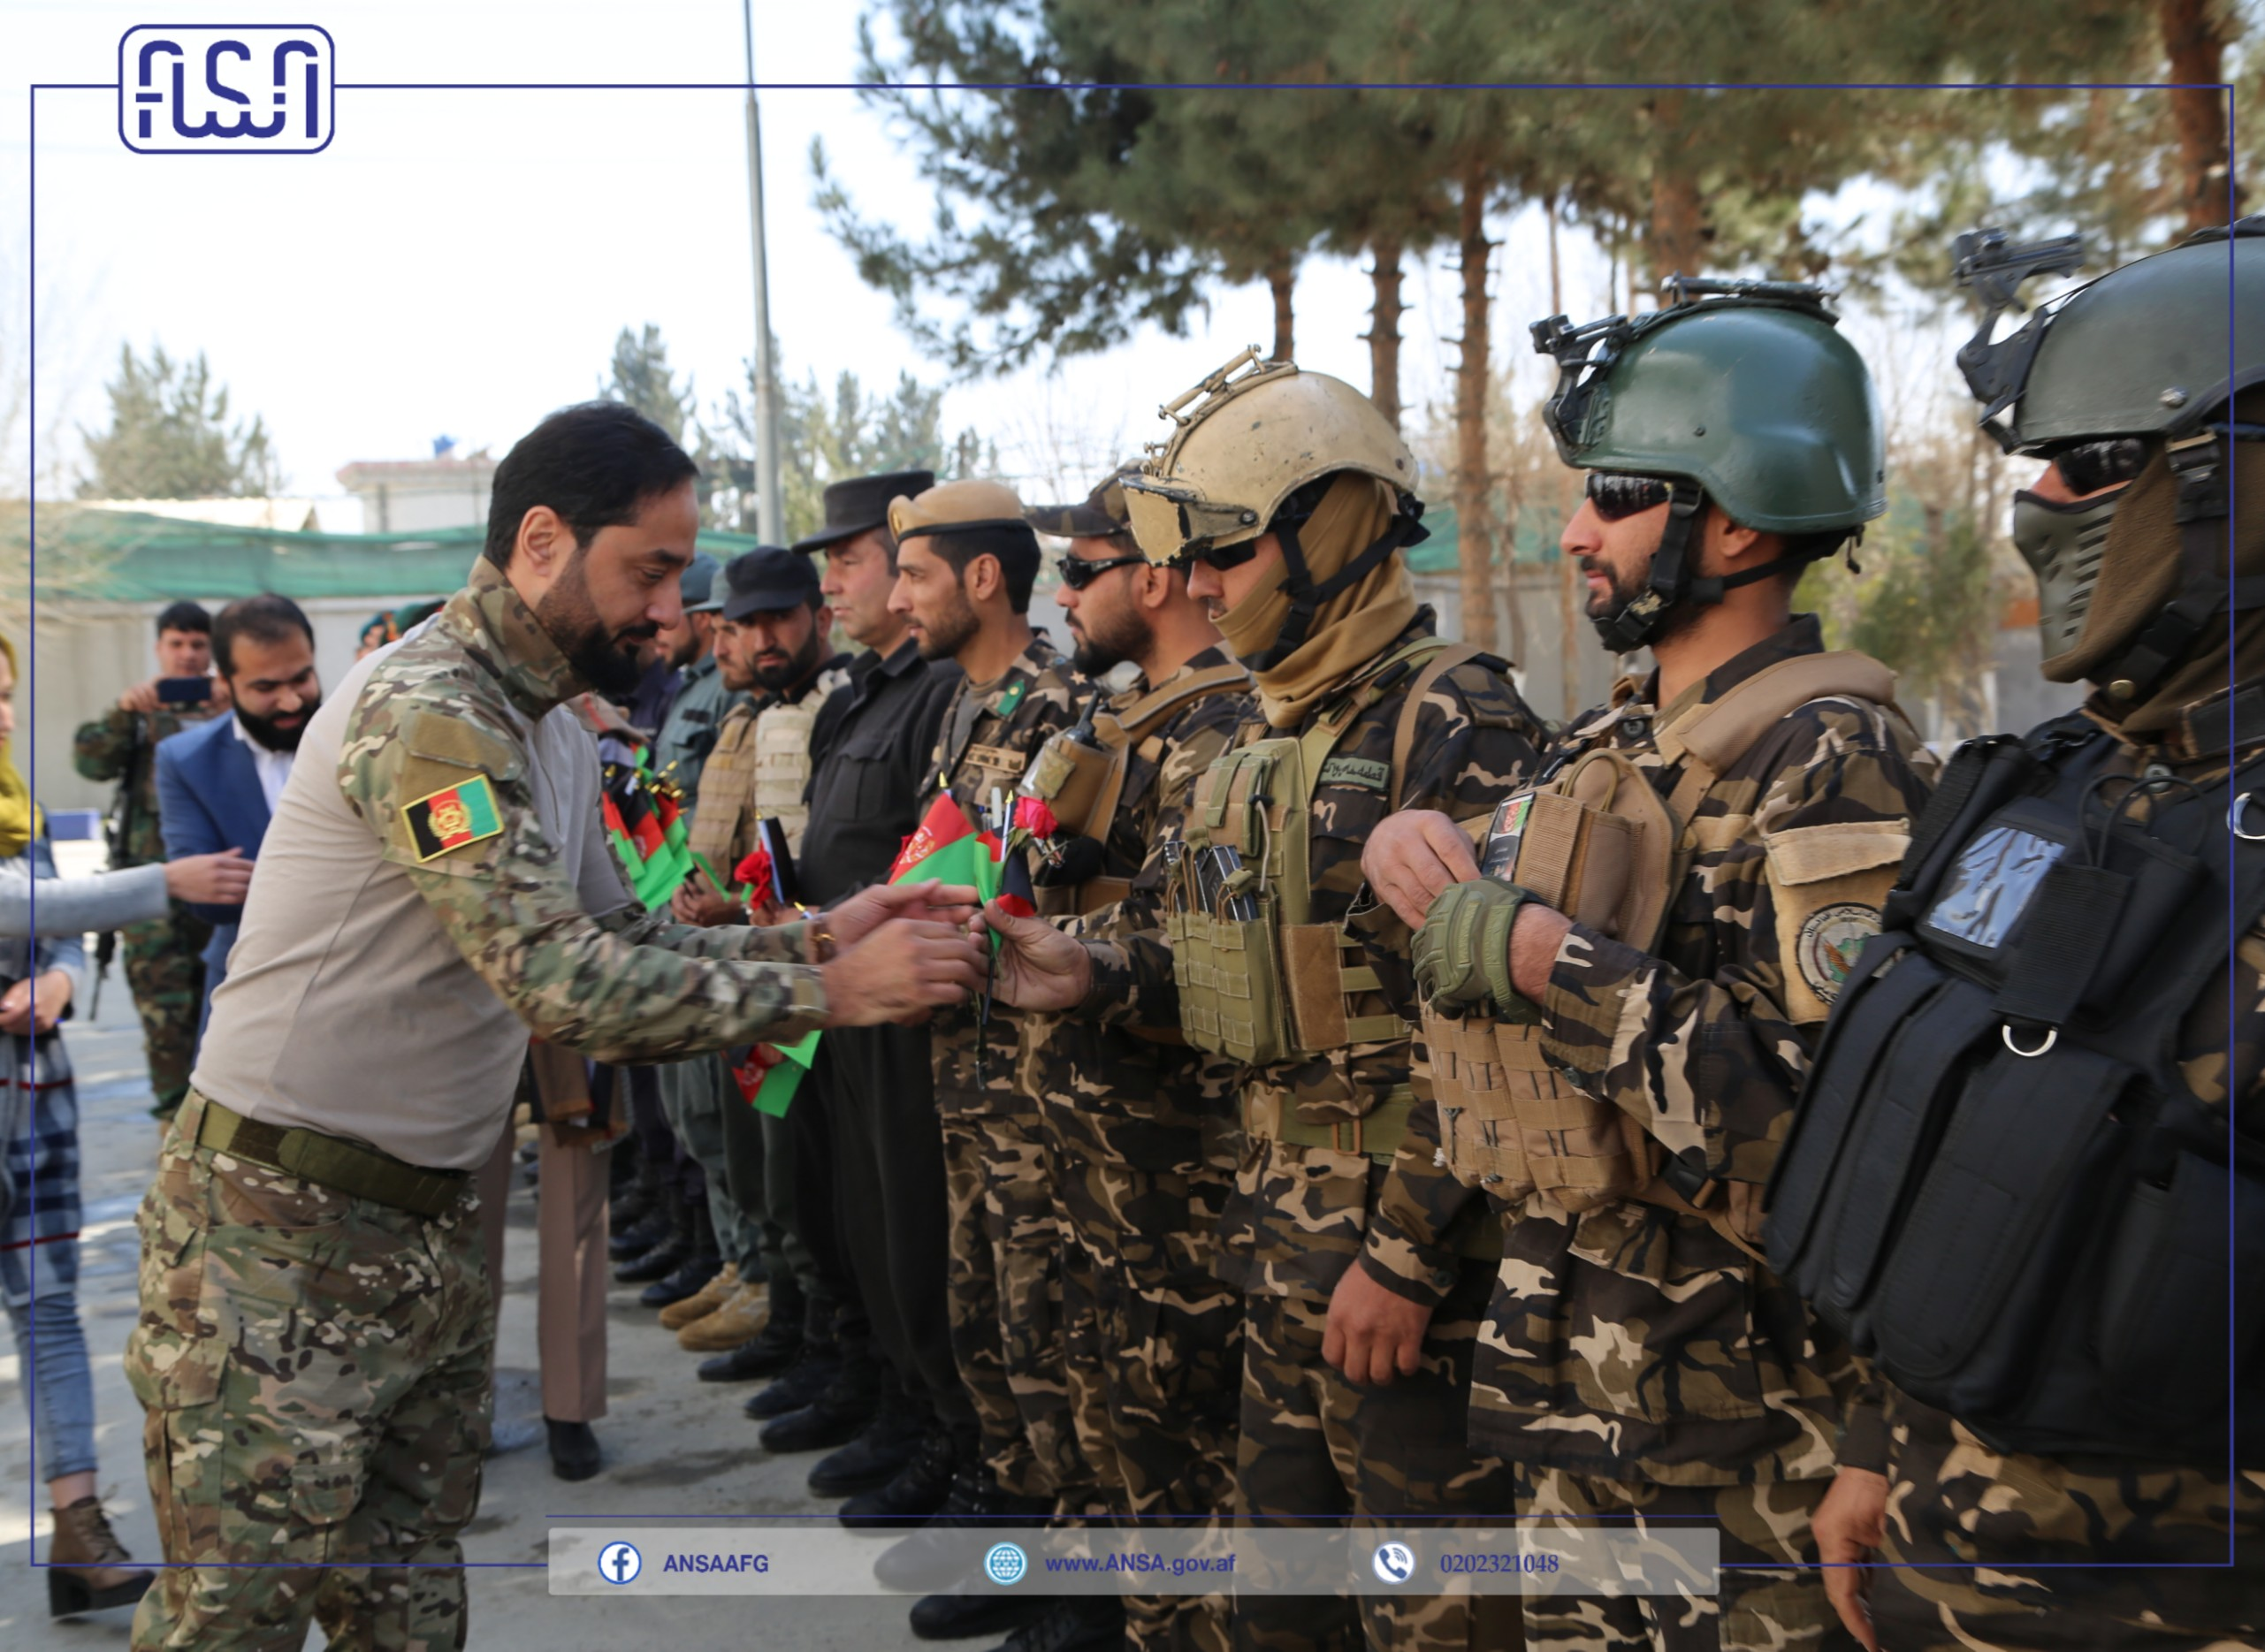 Afghanistan National Standards Authority celebrated national security defense forces day.